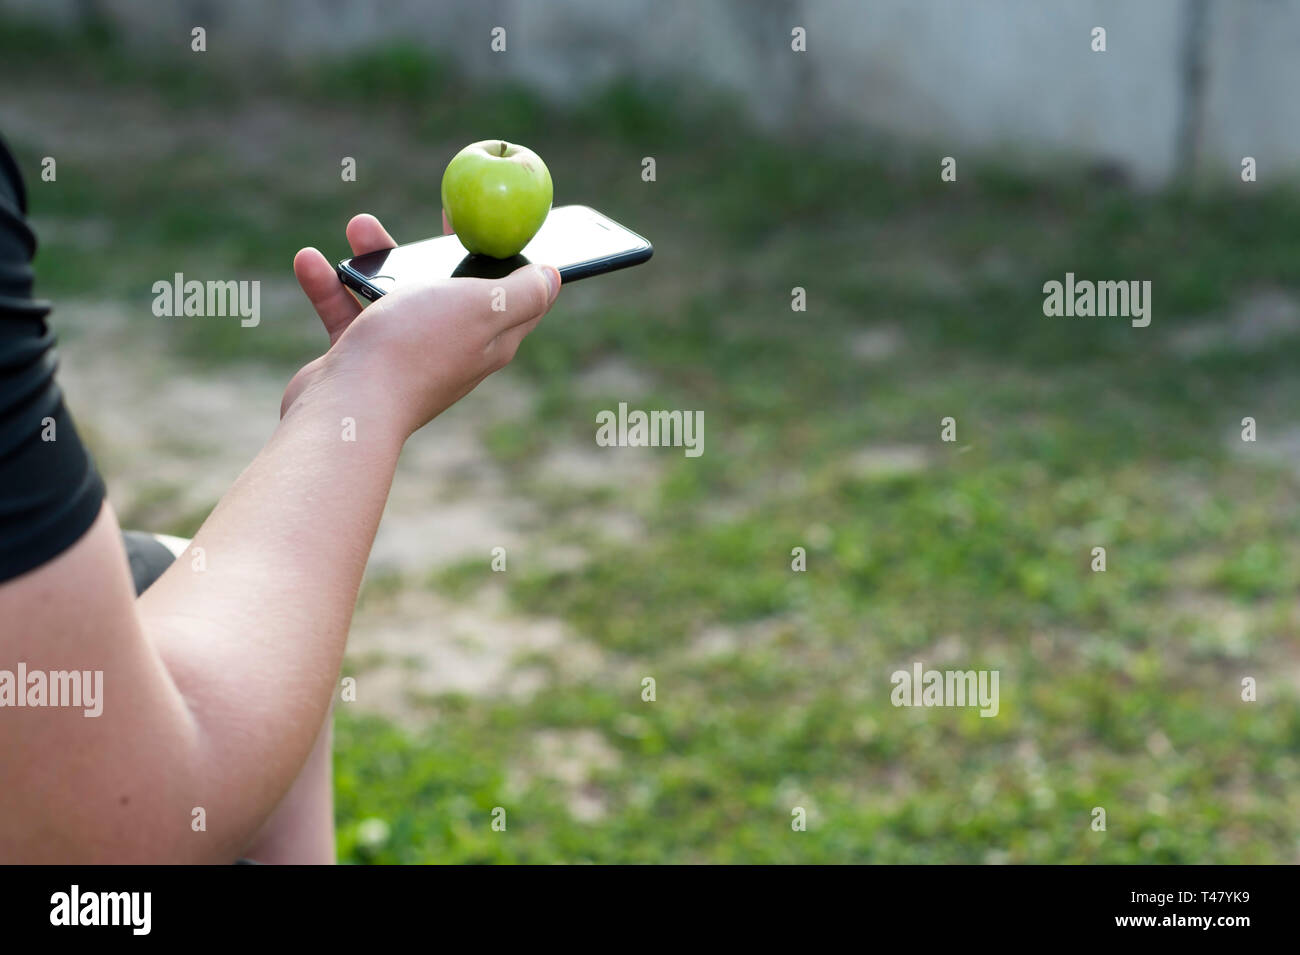 Hand boy teenager holding a mobile phone IPhone 6s. The concept of attribute necessity, the cult of values of the younger generation. - Stock Image